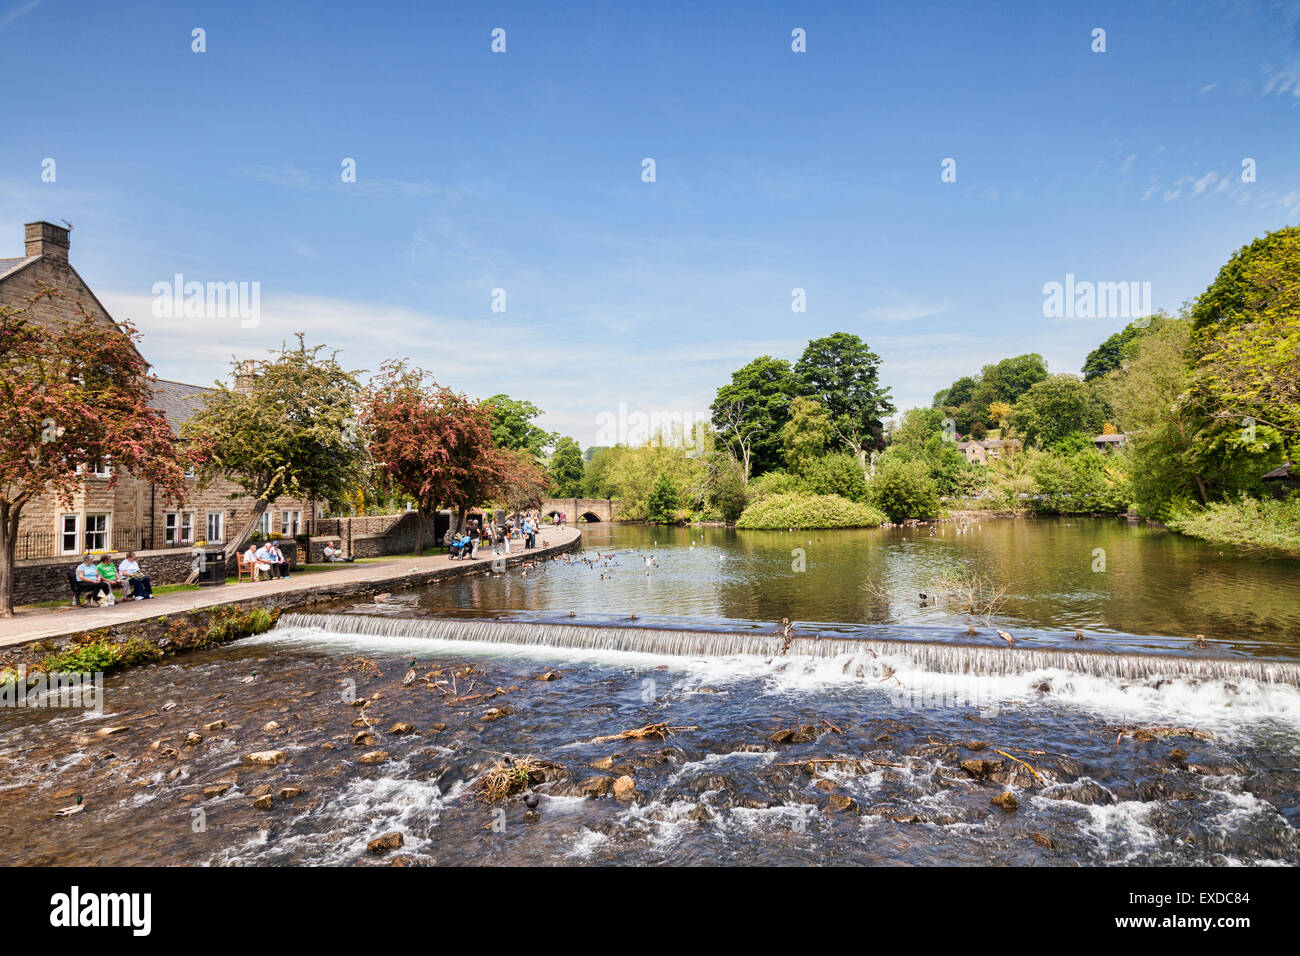 The weir and the River Wye at Bakewell, Derbyshire, England. - Stock Image